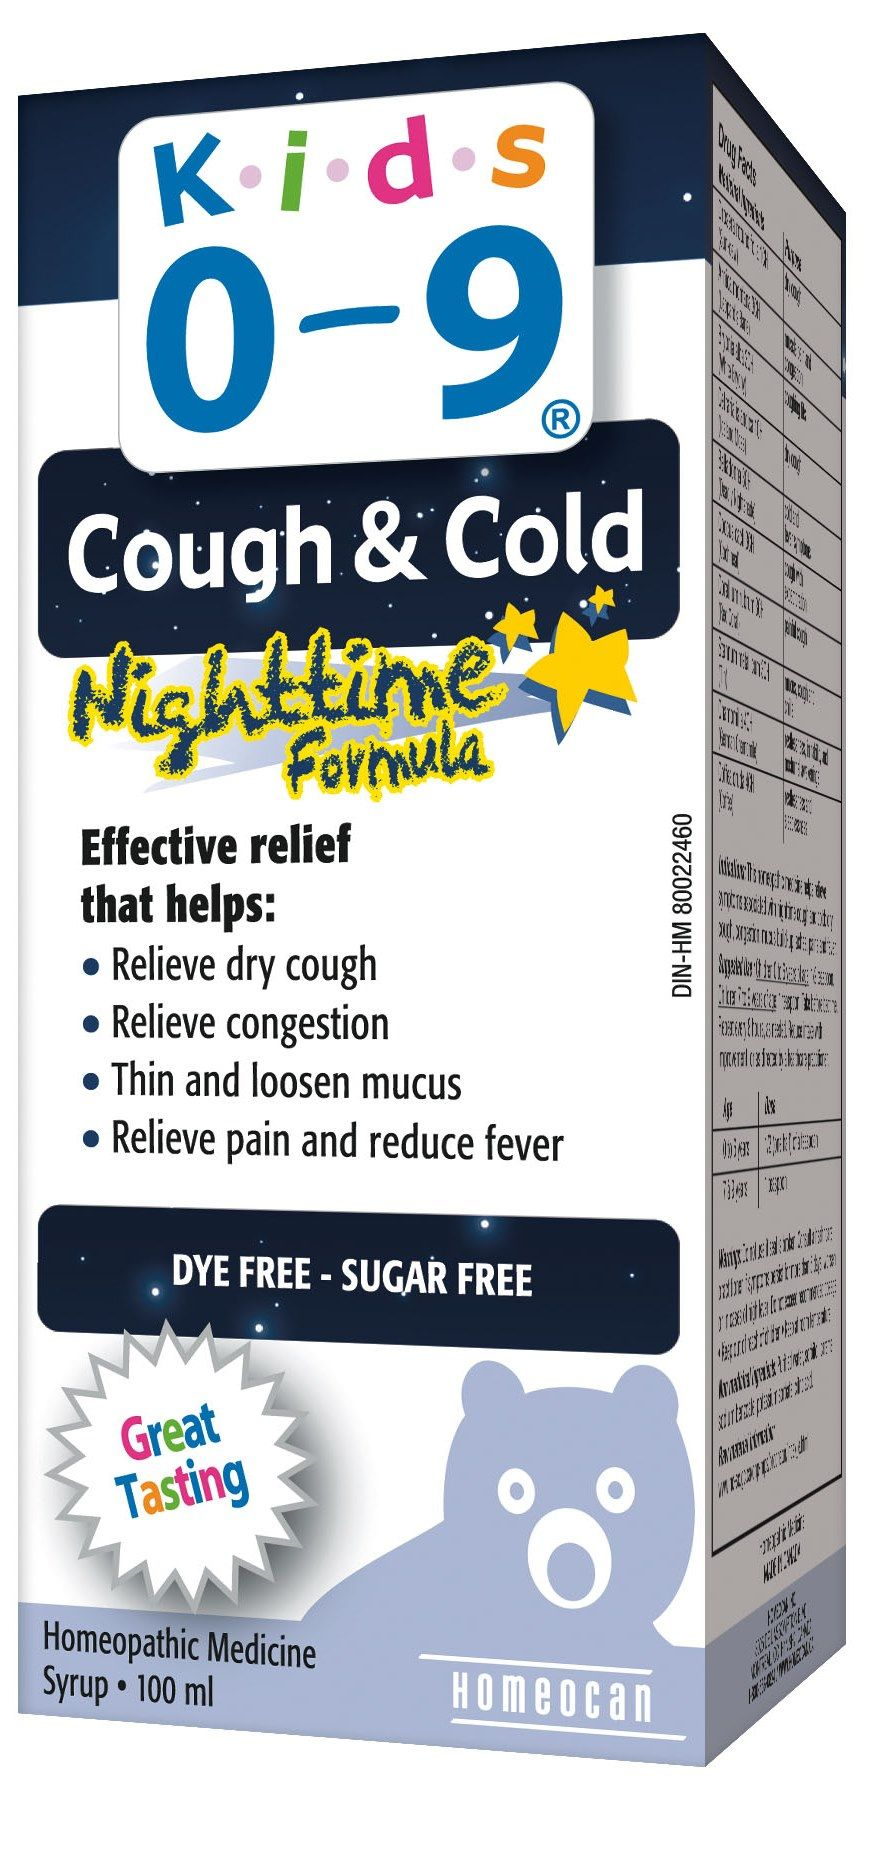 Kids 0 9 Cough Cold Nighttime Formula Syrup Great Tasting Homeopathic Medicine Helps Relieve Symptoms Associated W Dry Cough Cold Cough Nighttime Coughing